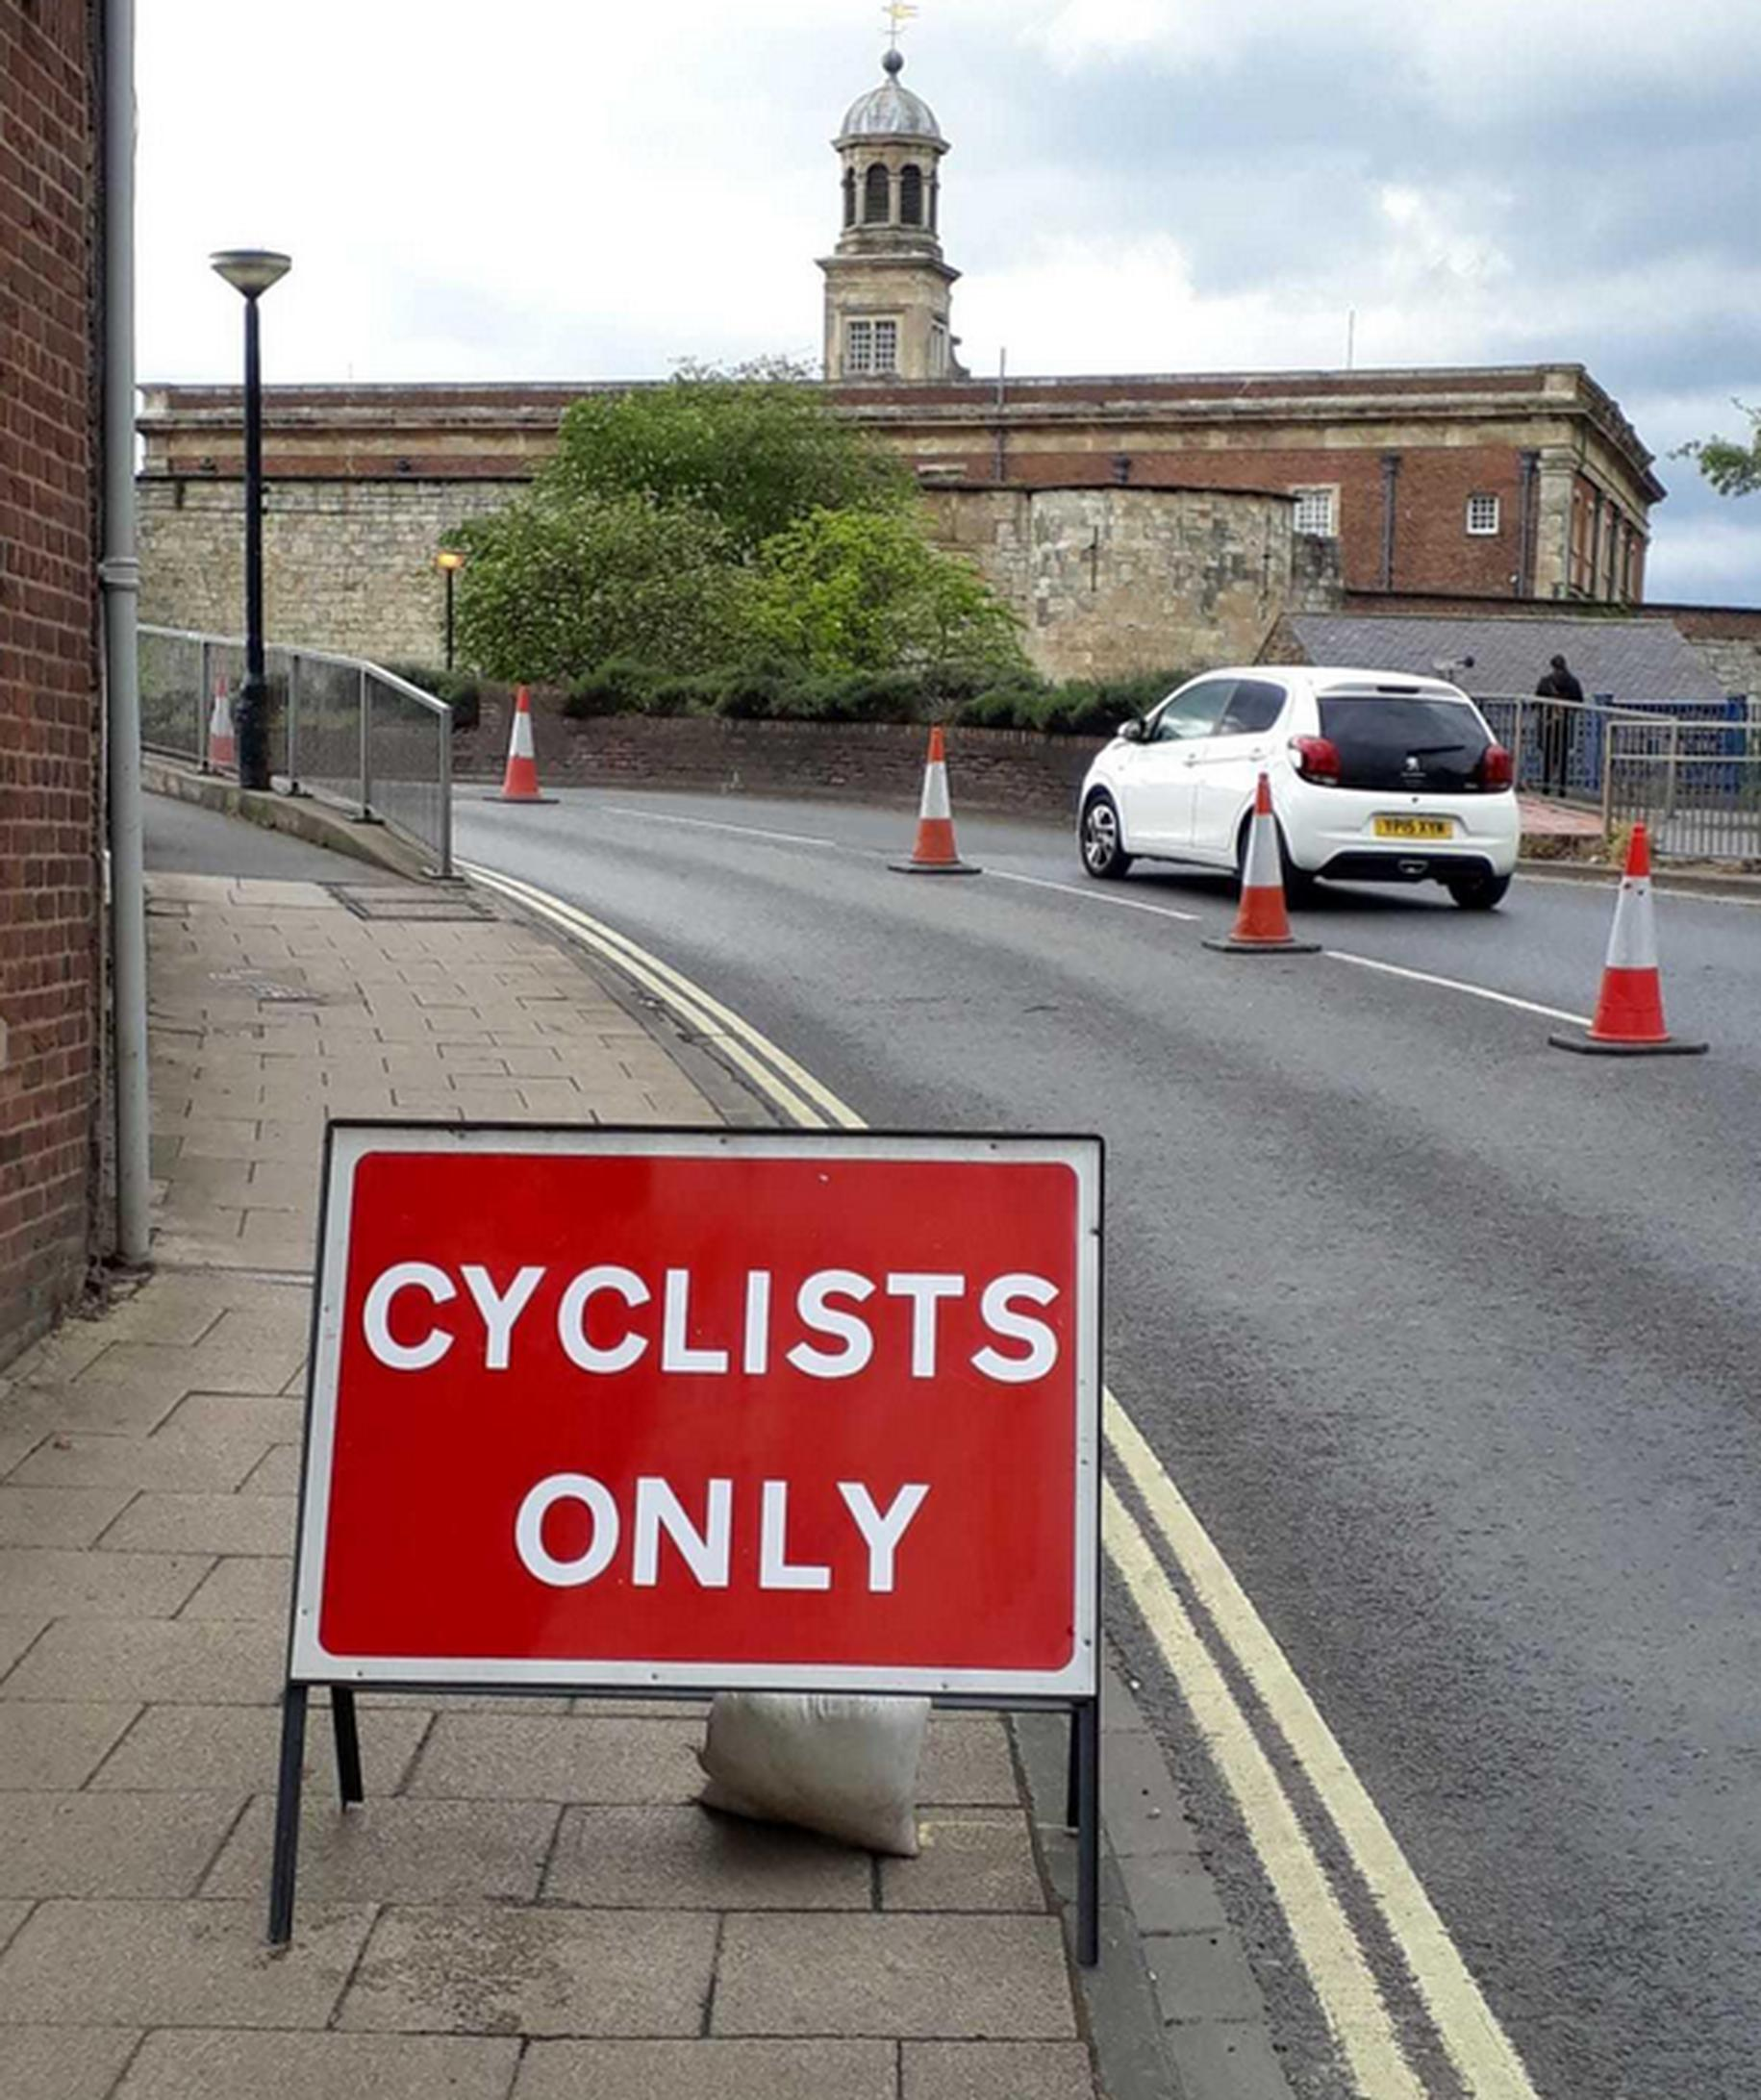 Pop-up cycle lanes are appearing across York